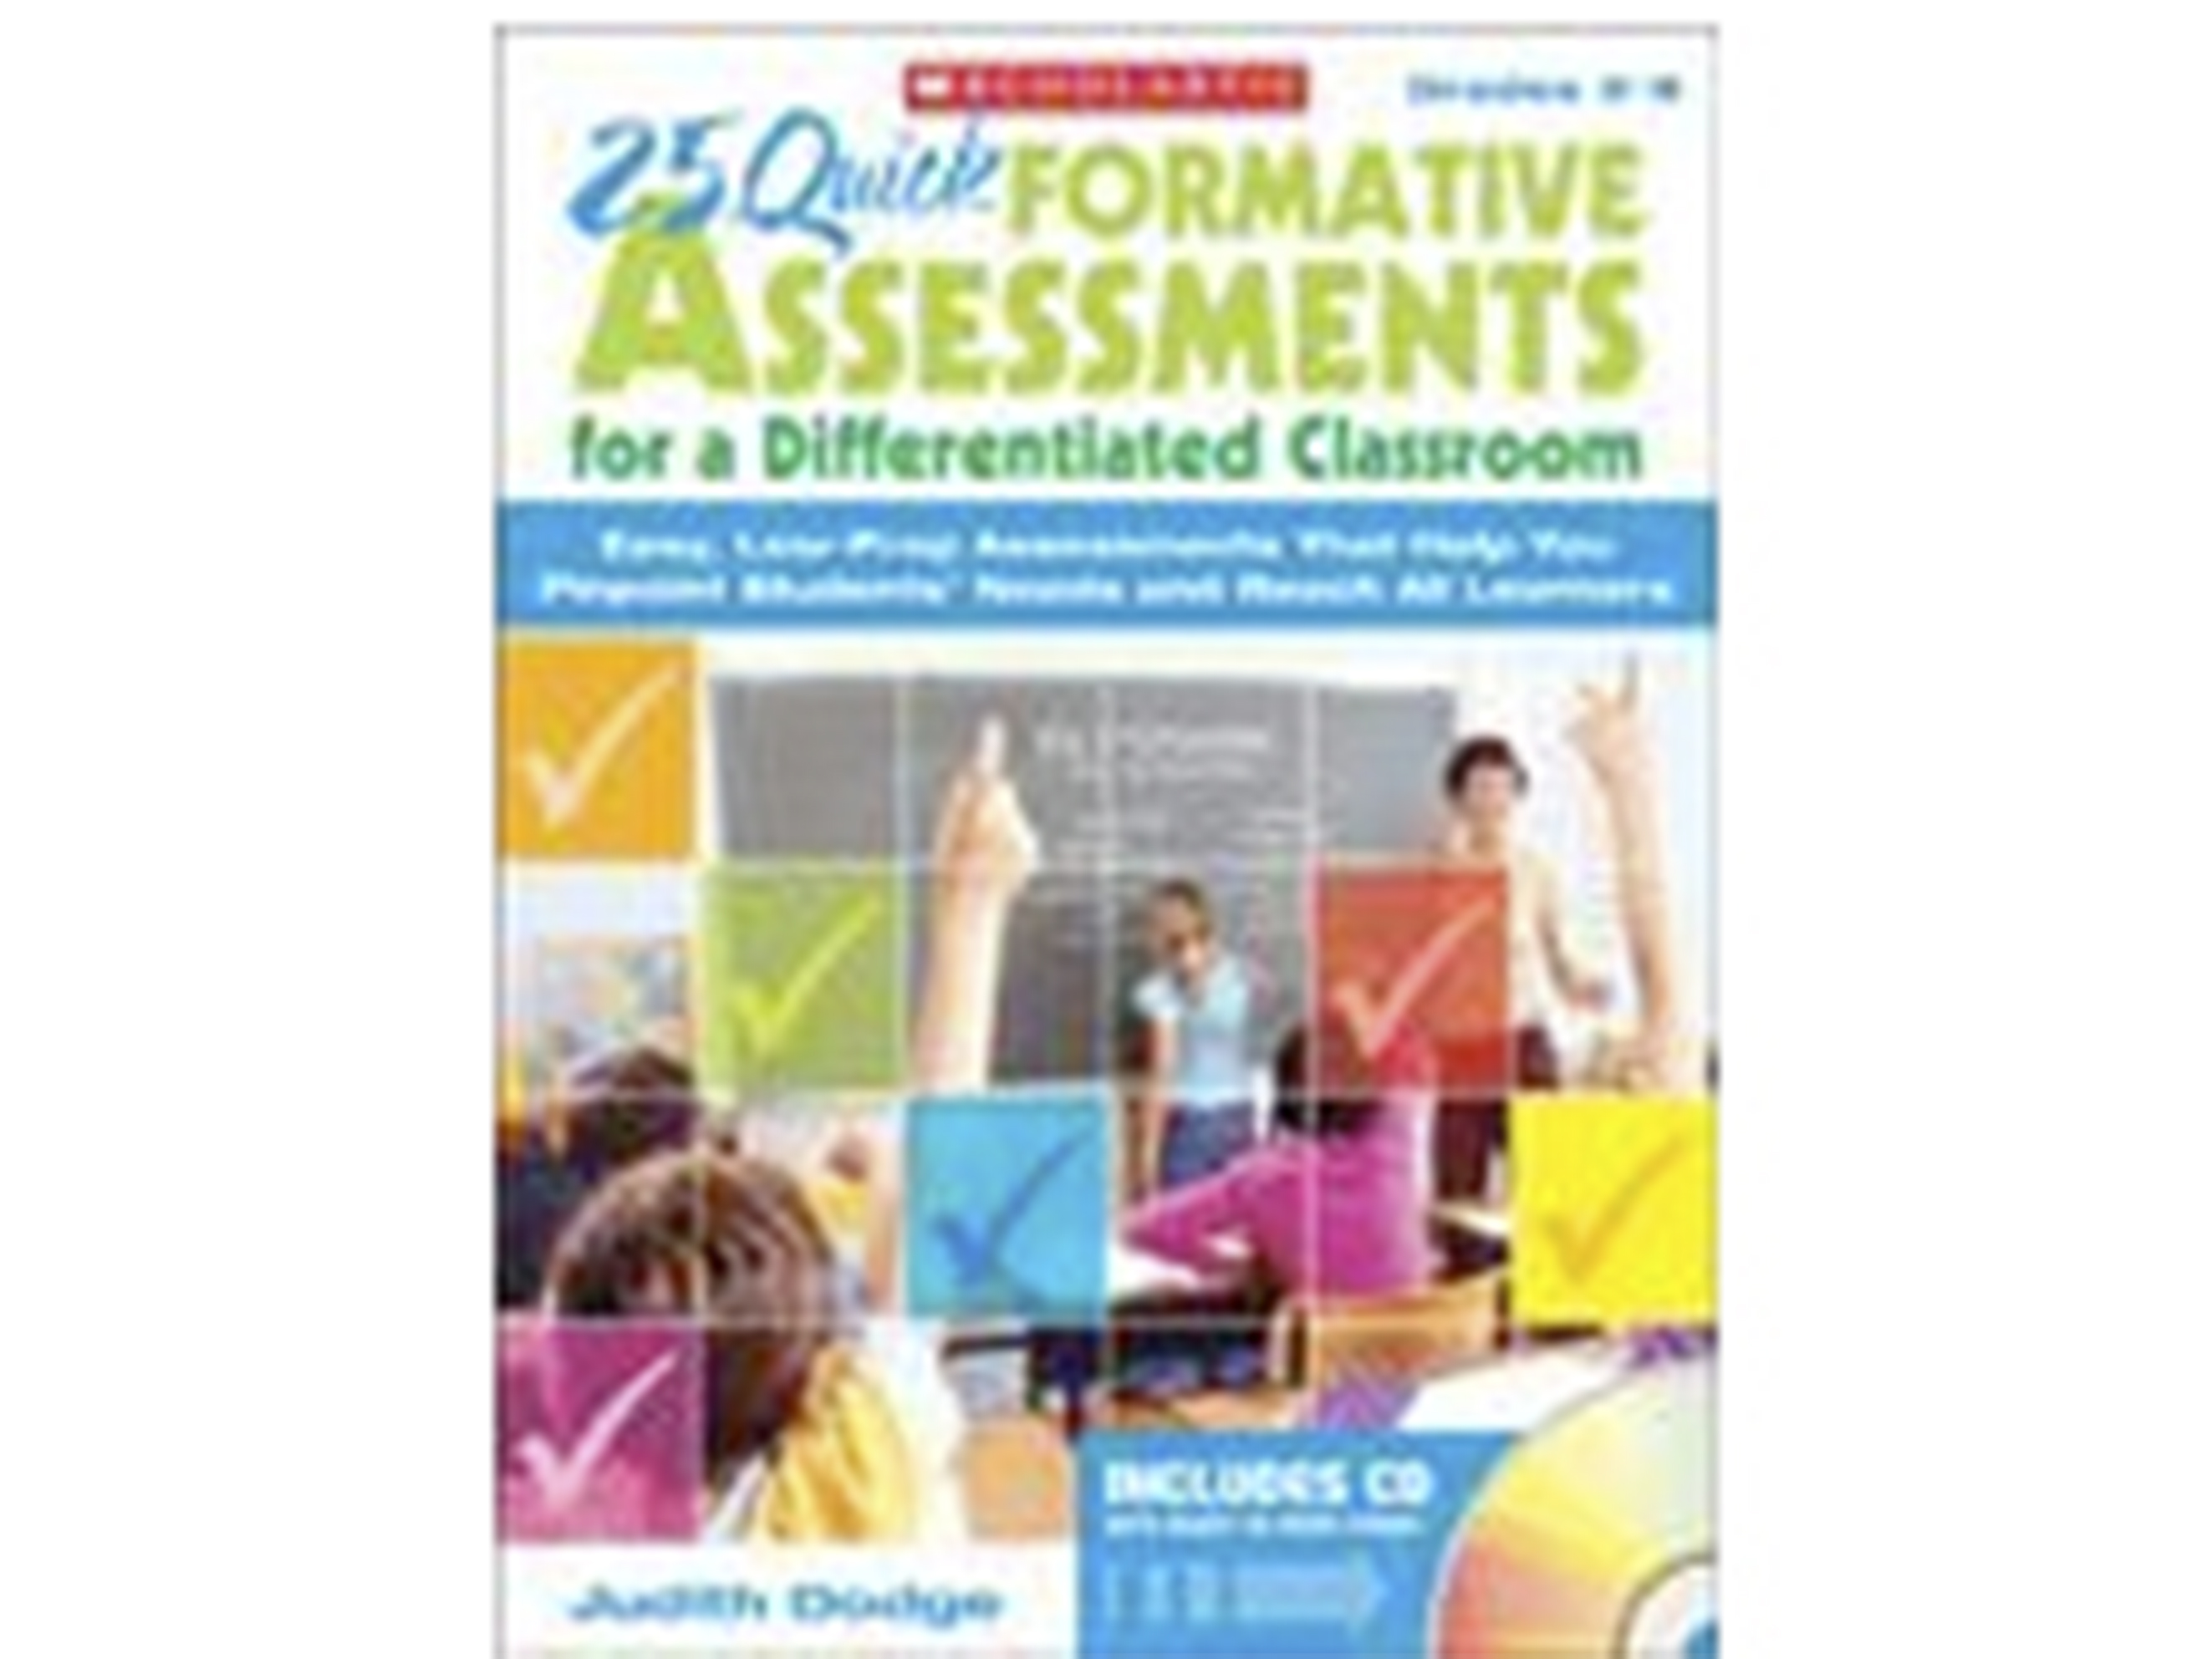 What Are Formative Assessments and Why Should We Use Them? | Scholastic